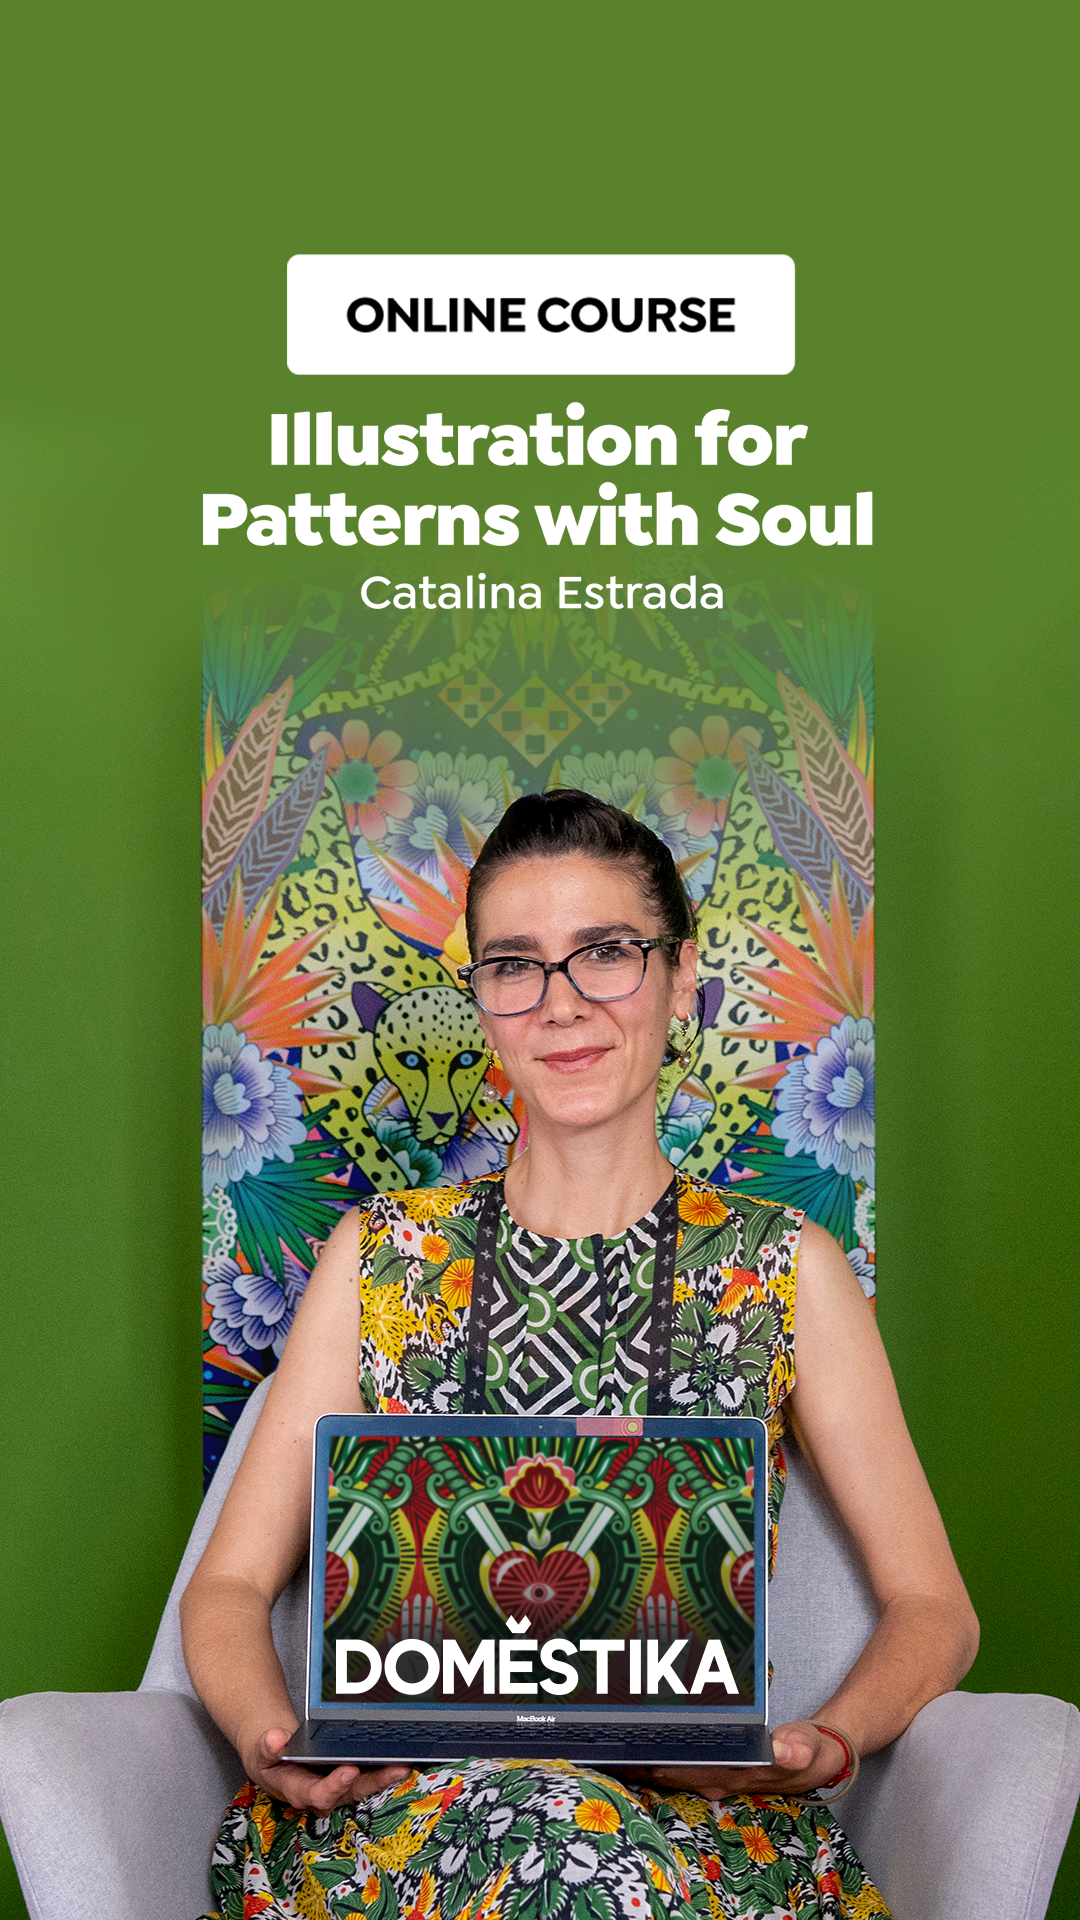 Illustration for Patterns with Soul - Domestika Course by Catalina Estrada